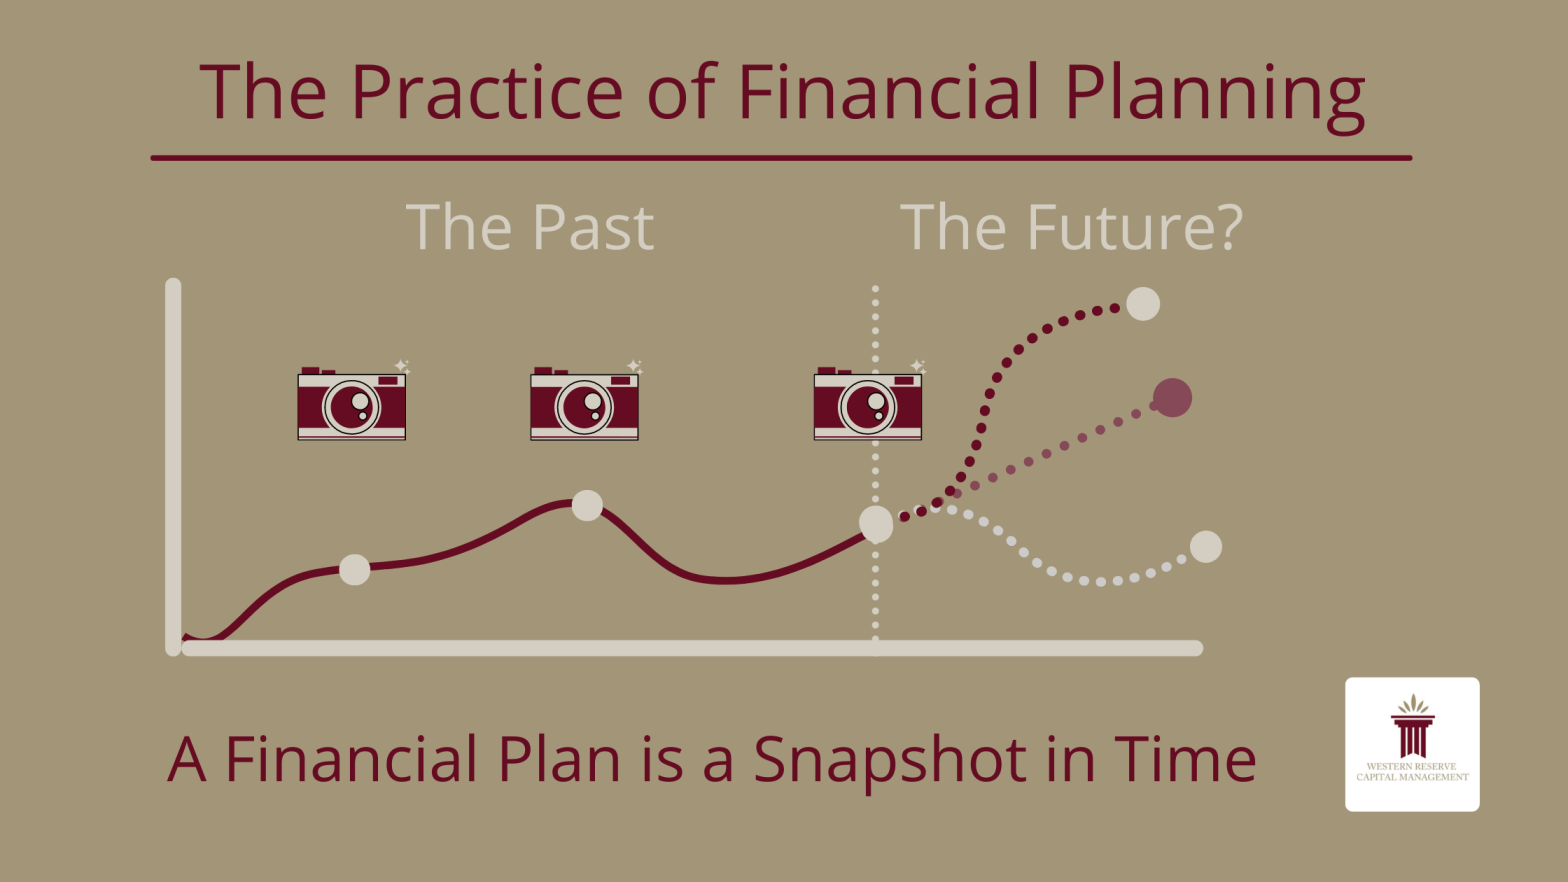 The Practice of Financial Planning